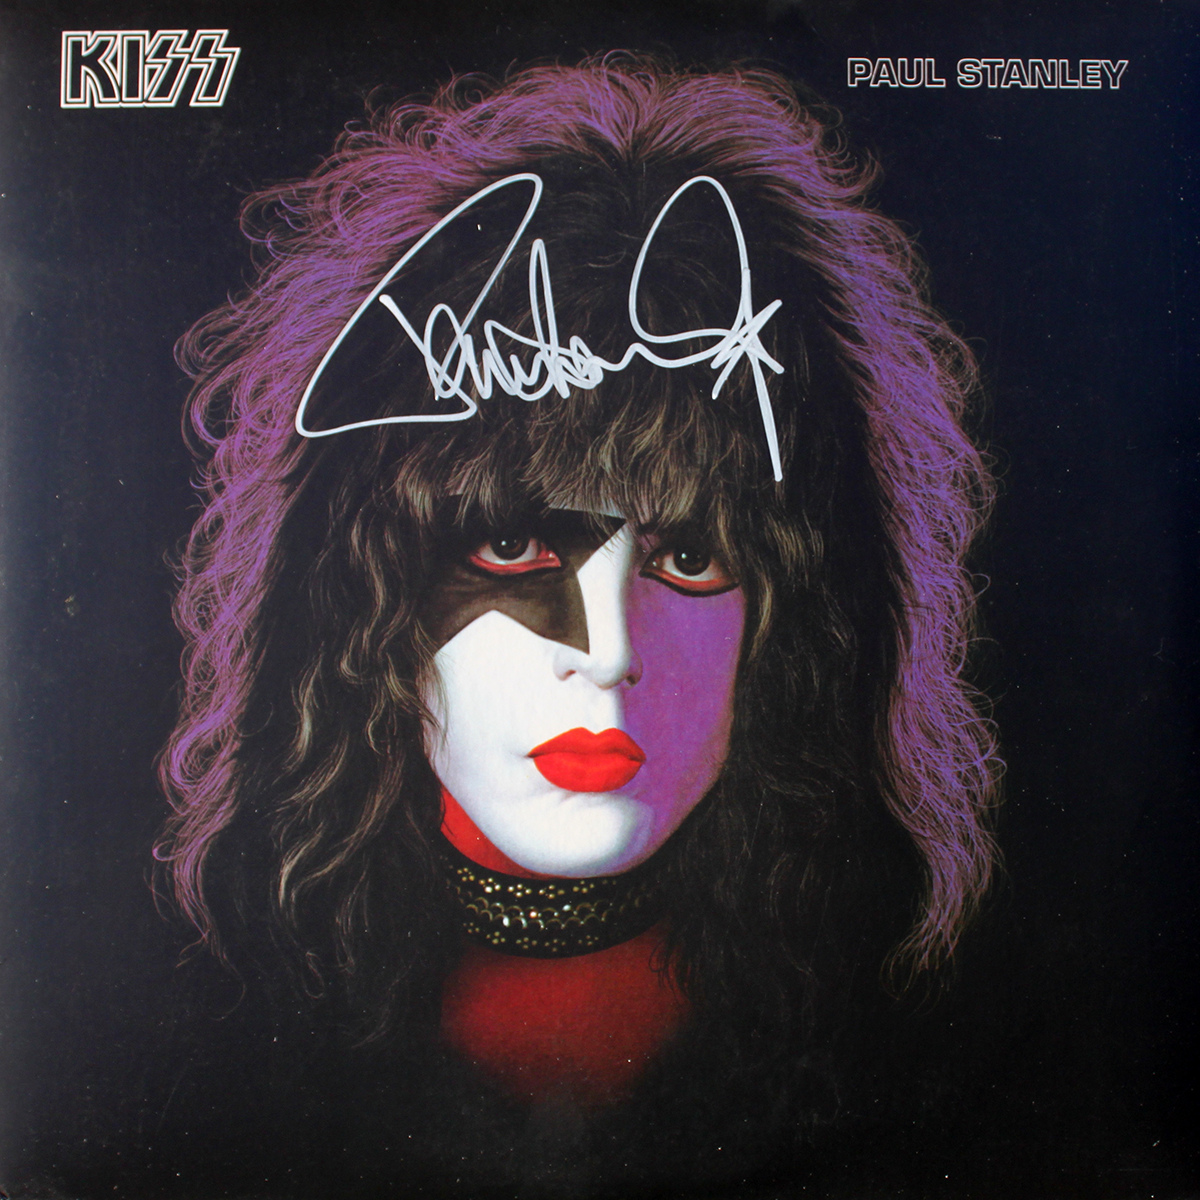 Paul Stanley - Solo Album